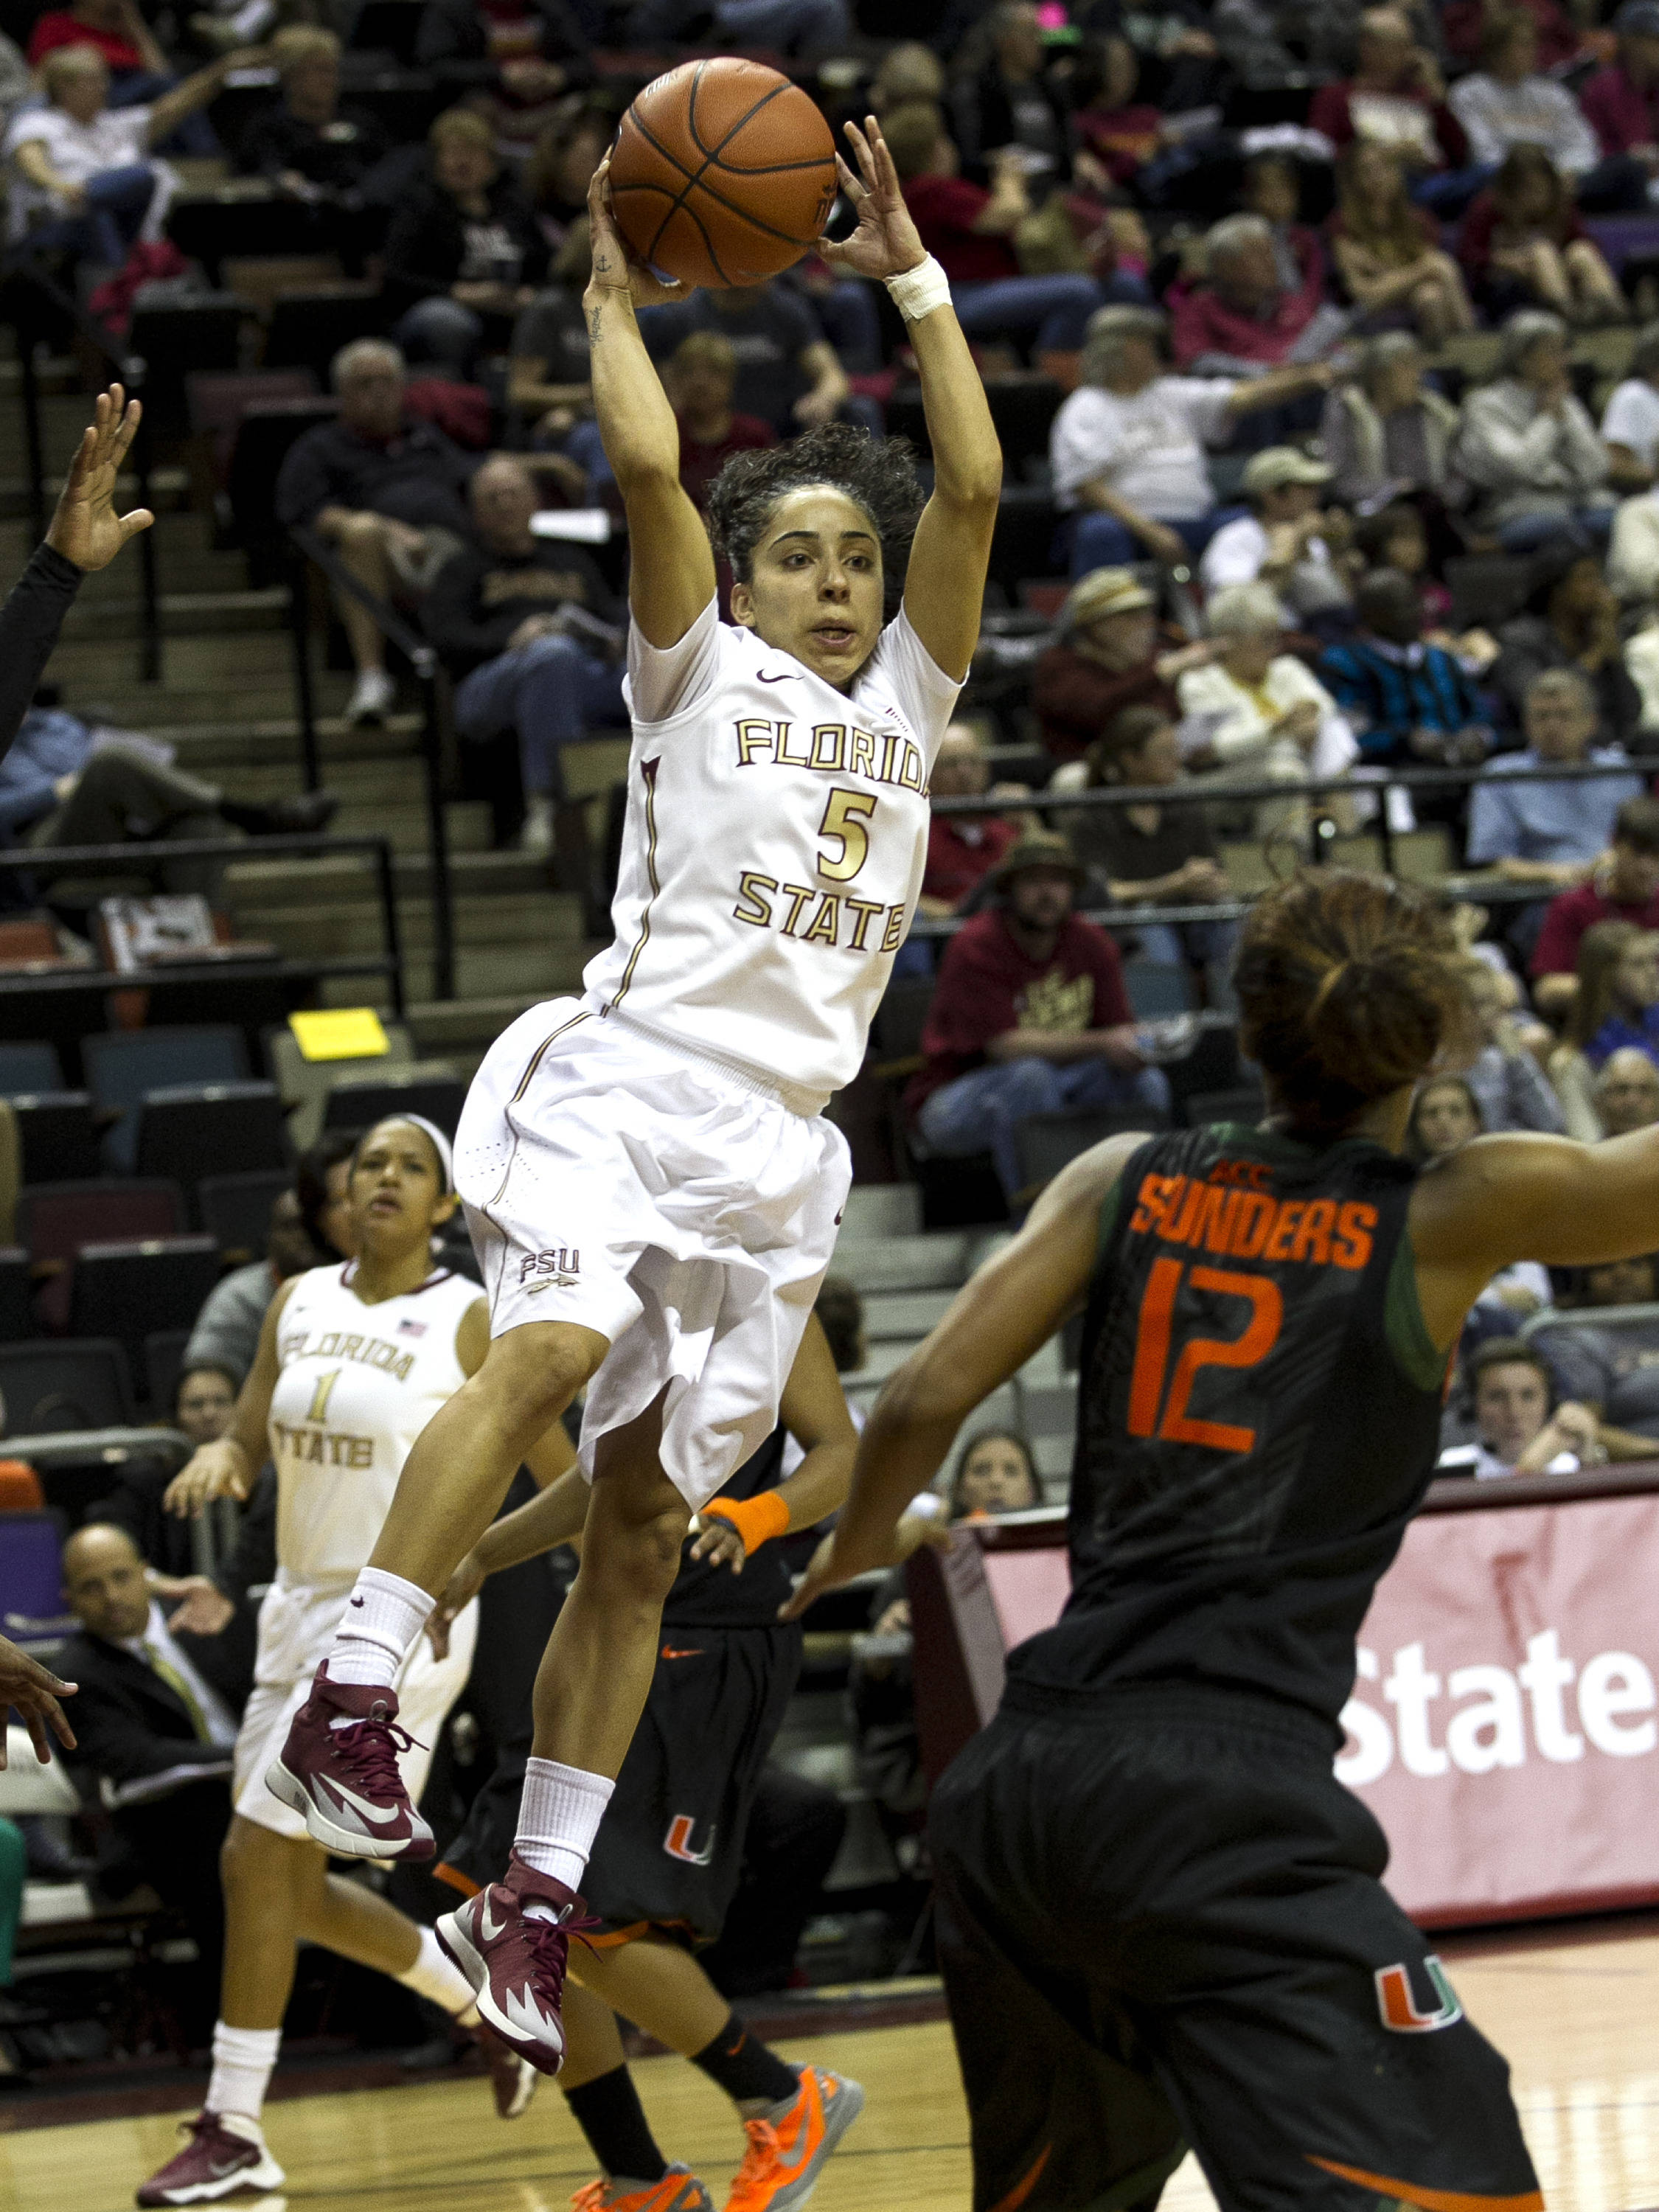 Cheetah Delgado (5) with an over the head across the lane pass, FSU vs Miami, 2-16-14, (Photo's by Steve Musco)